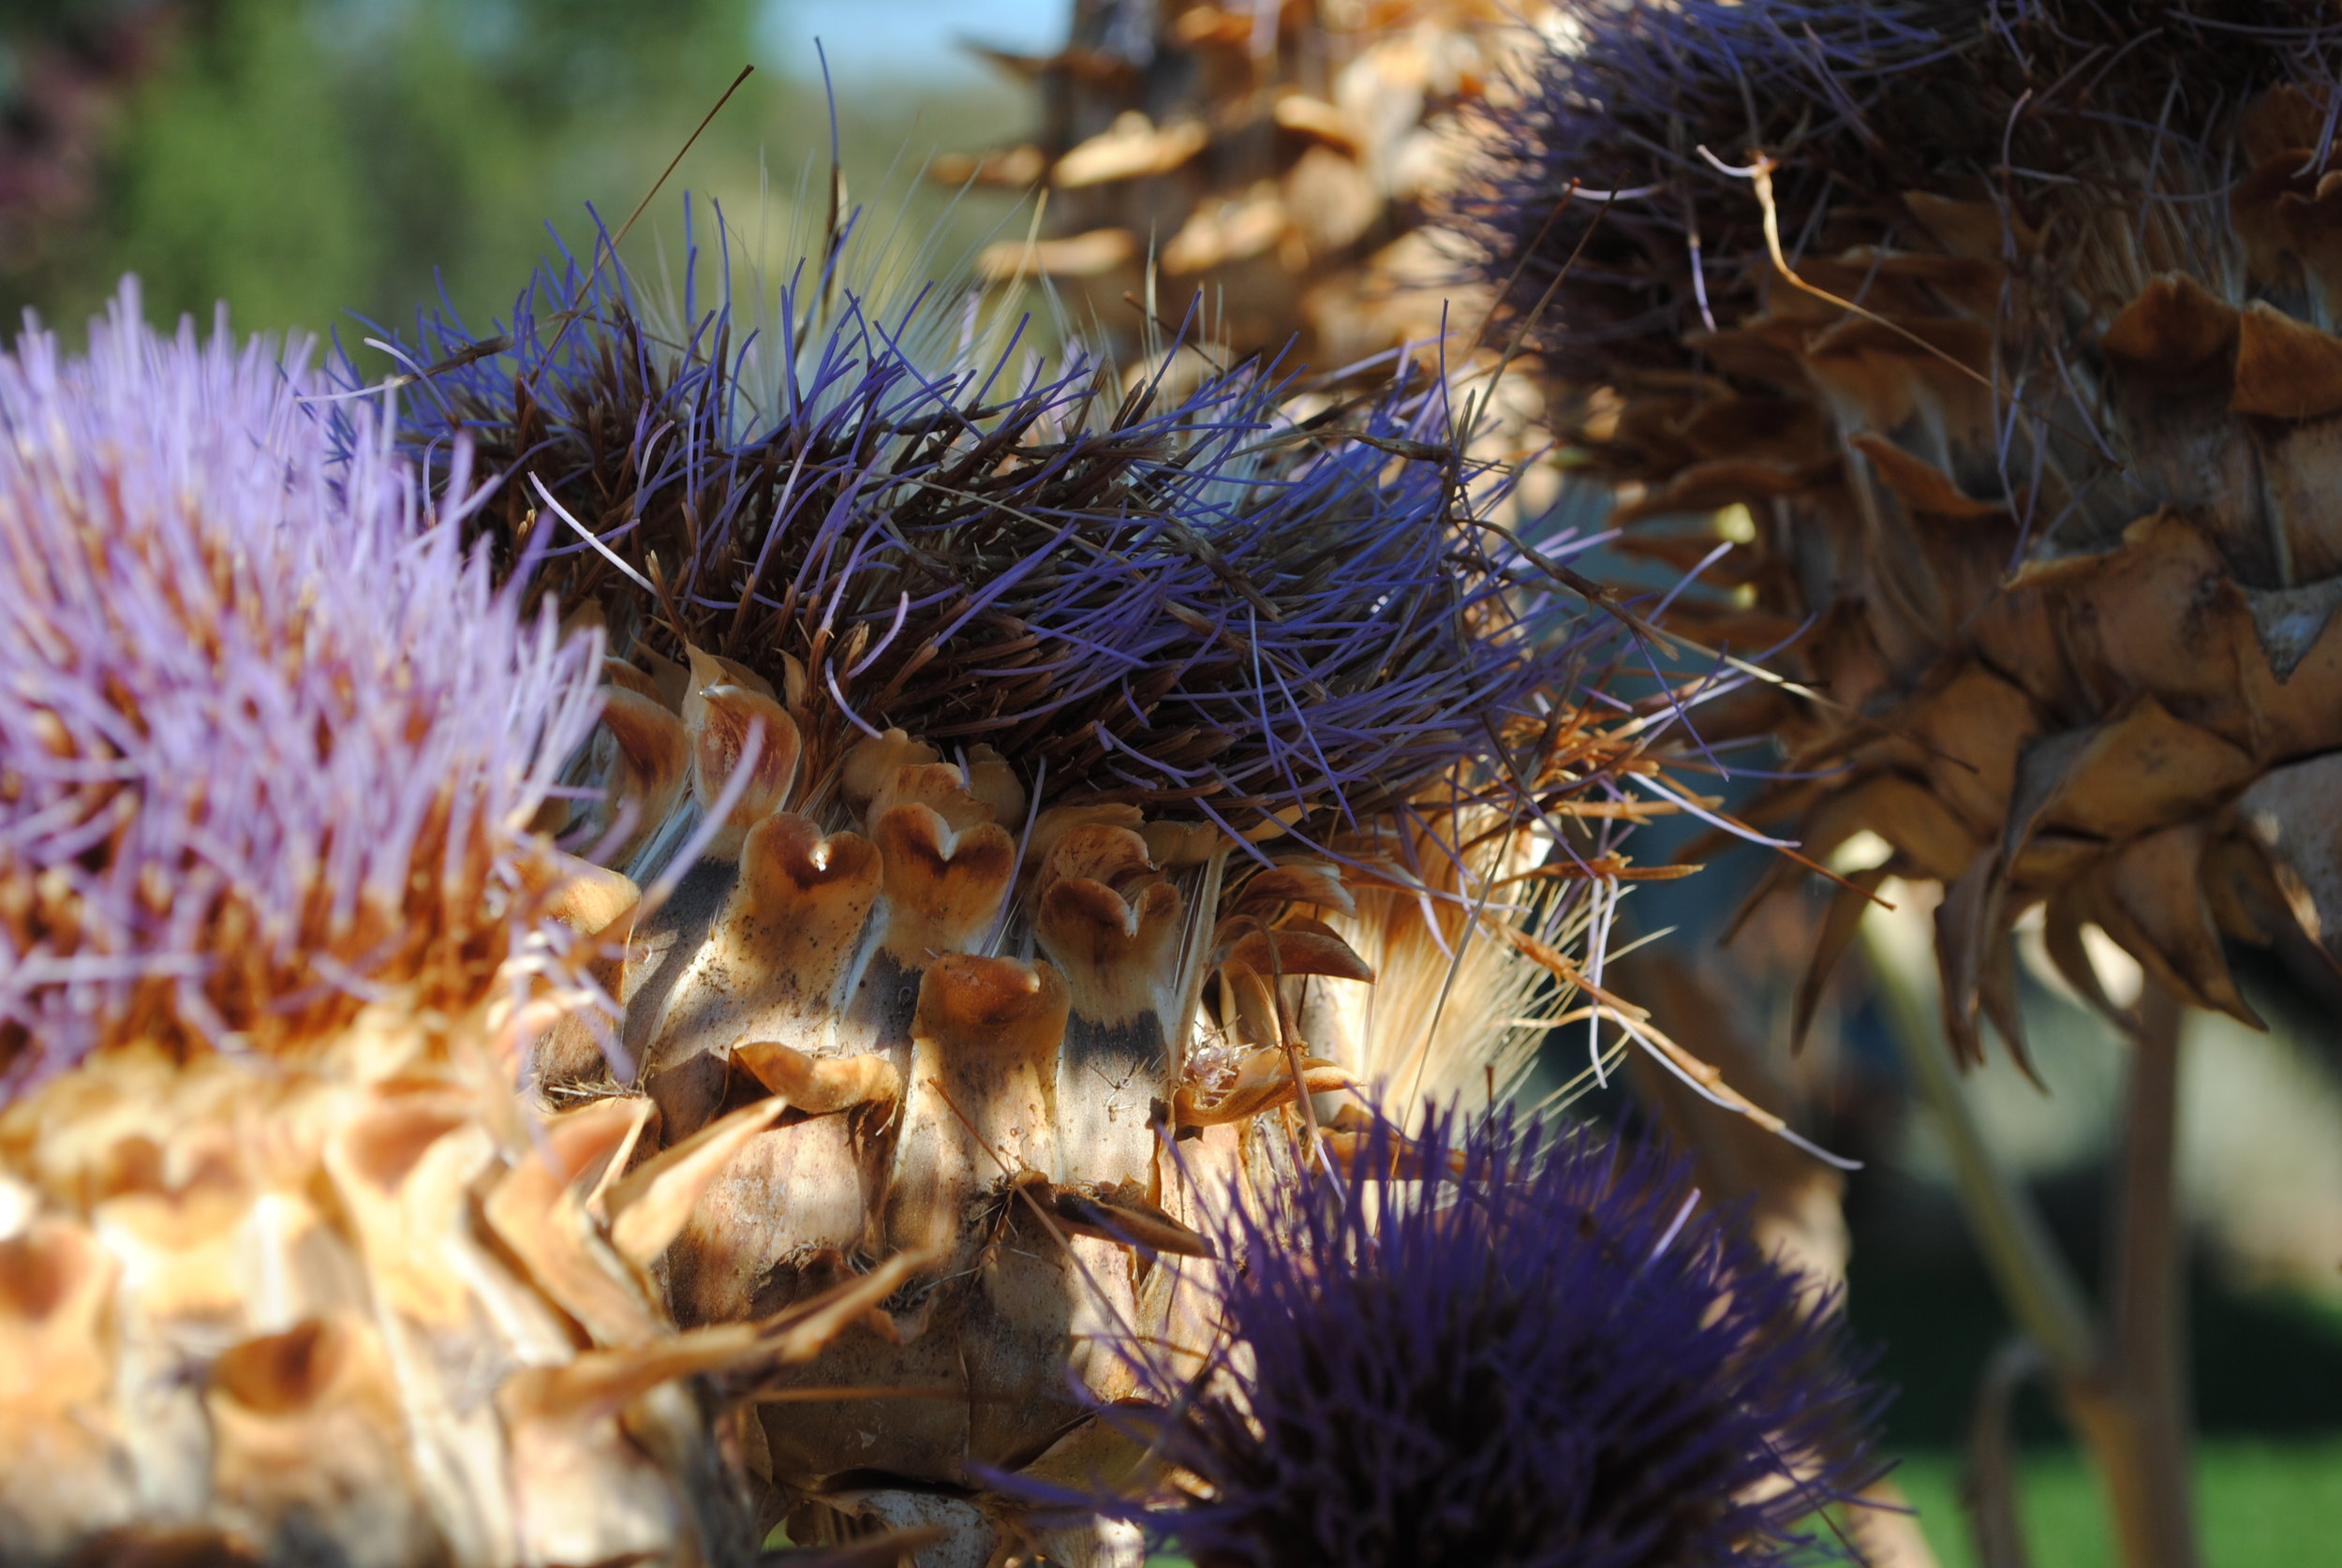 Giant Purple Artichokes, bloomed out. A favorite of bees and hummingbirds.